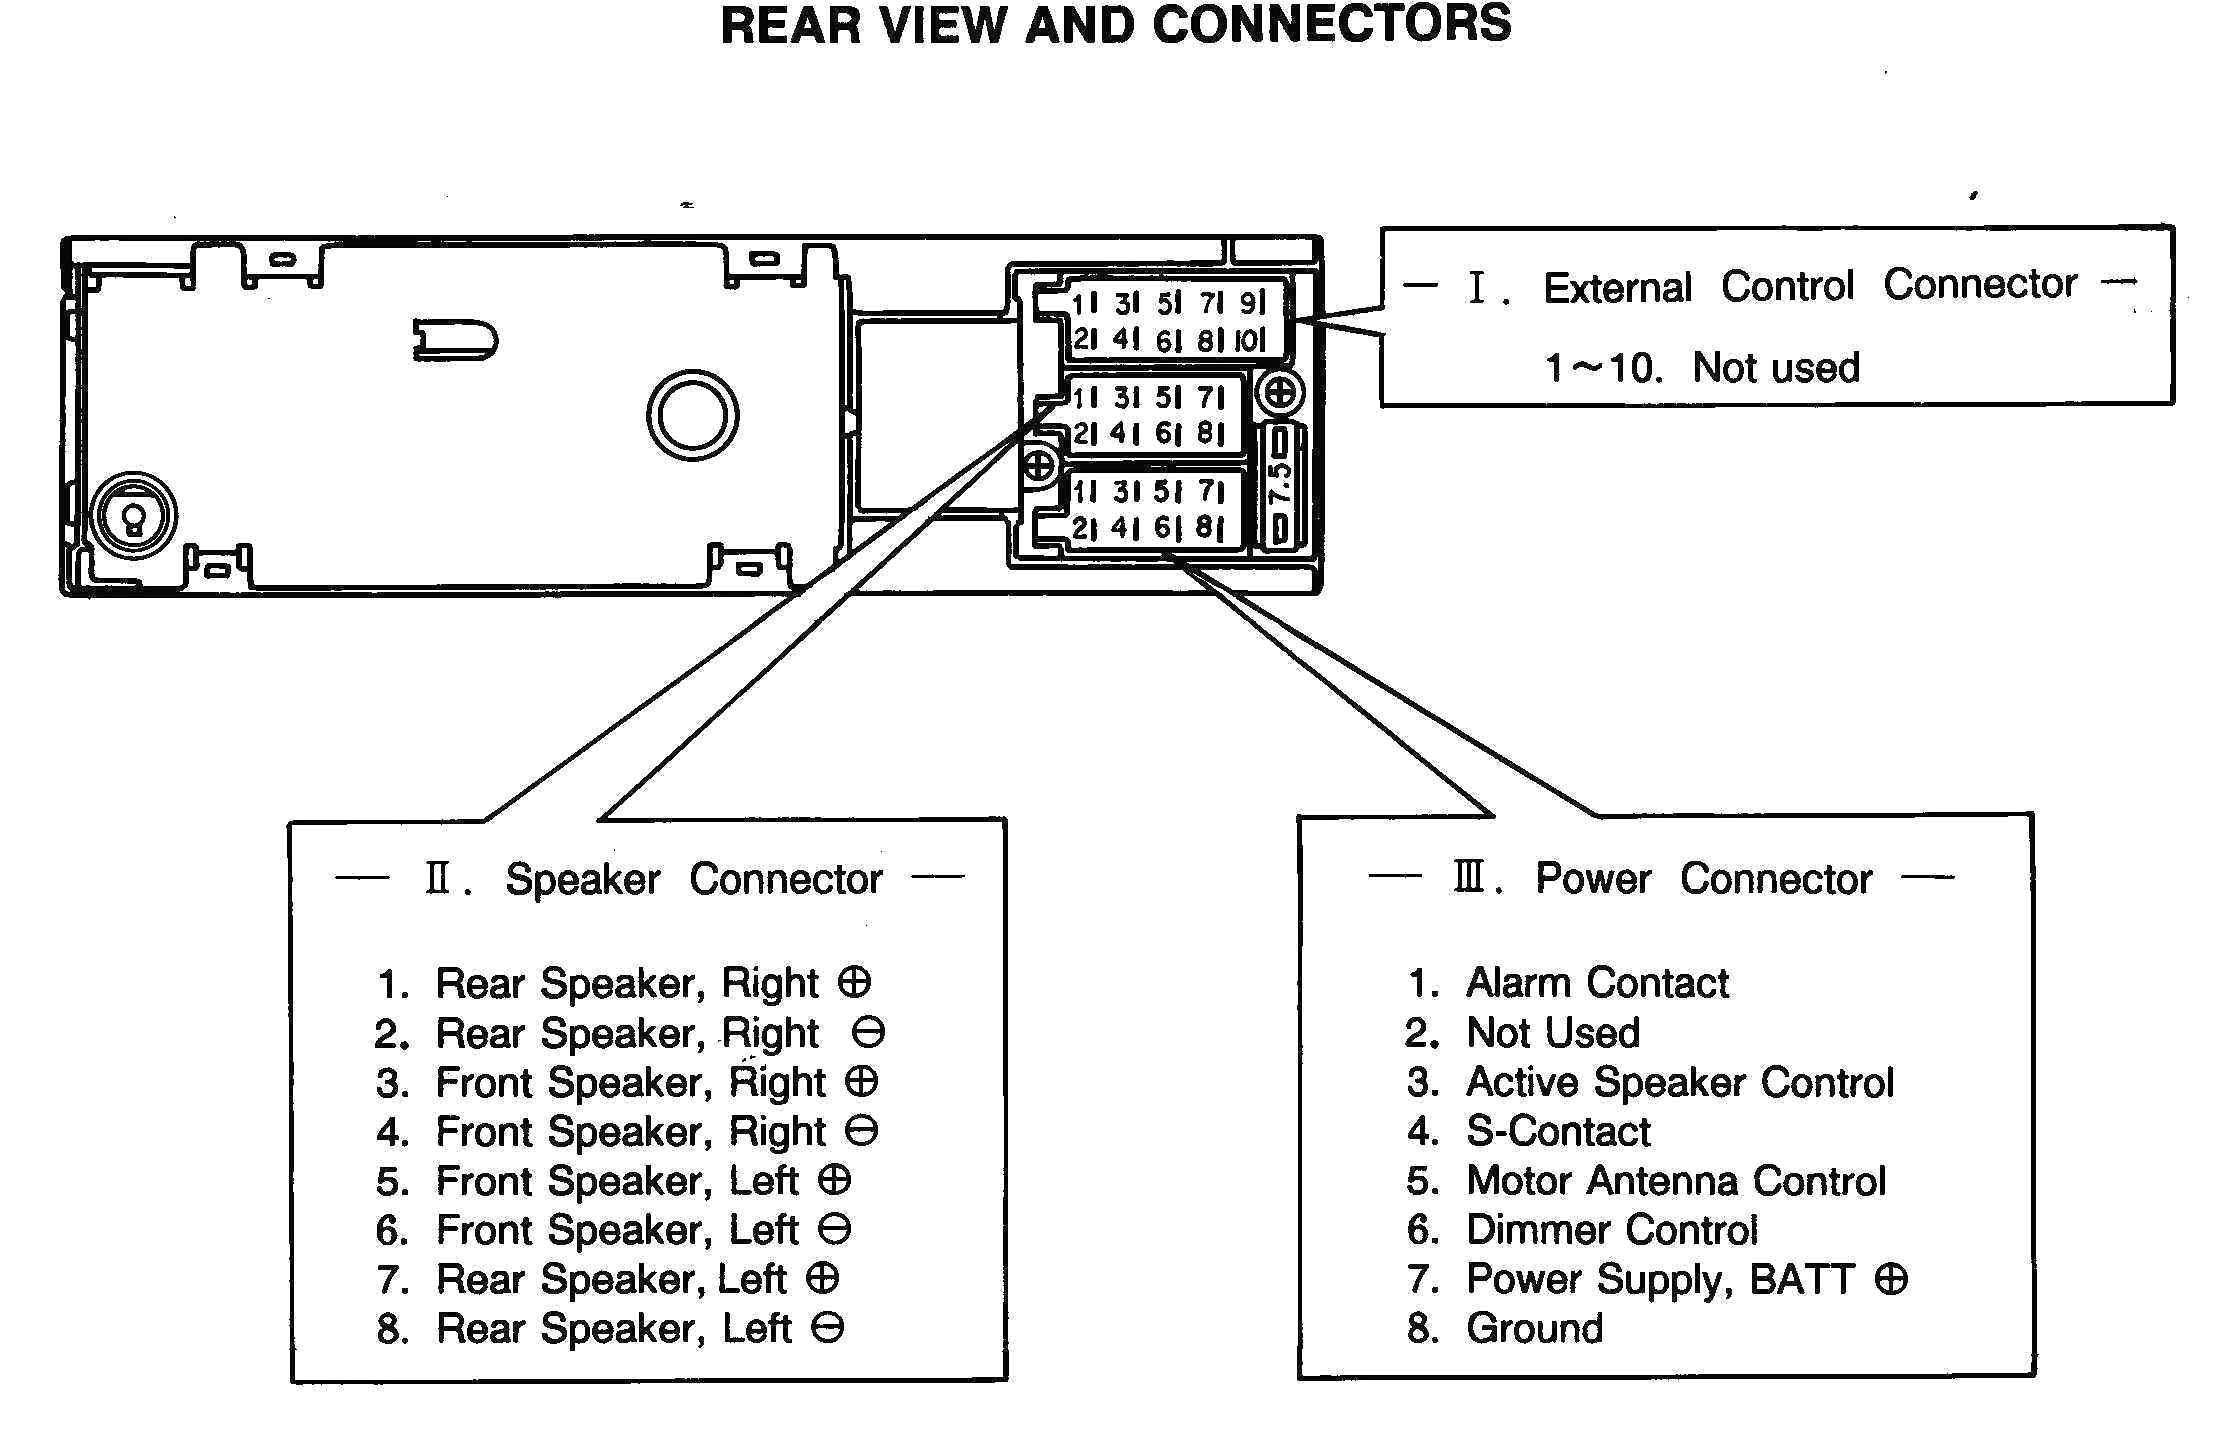 Download [DIAGRAM] Daihatsu Applause Radio Wiring Diagram FULL Version HD  Quality Wiring Diagram - OKCWEBDESIGNER.KINGGO.FRokcwebdesigner kinggo fr